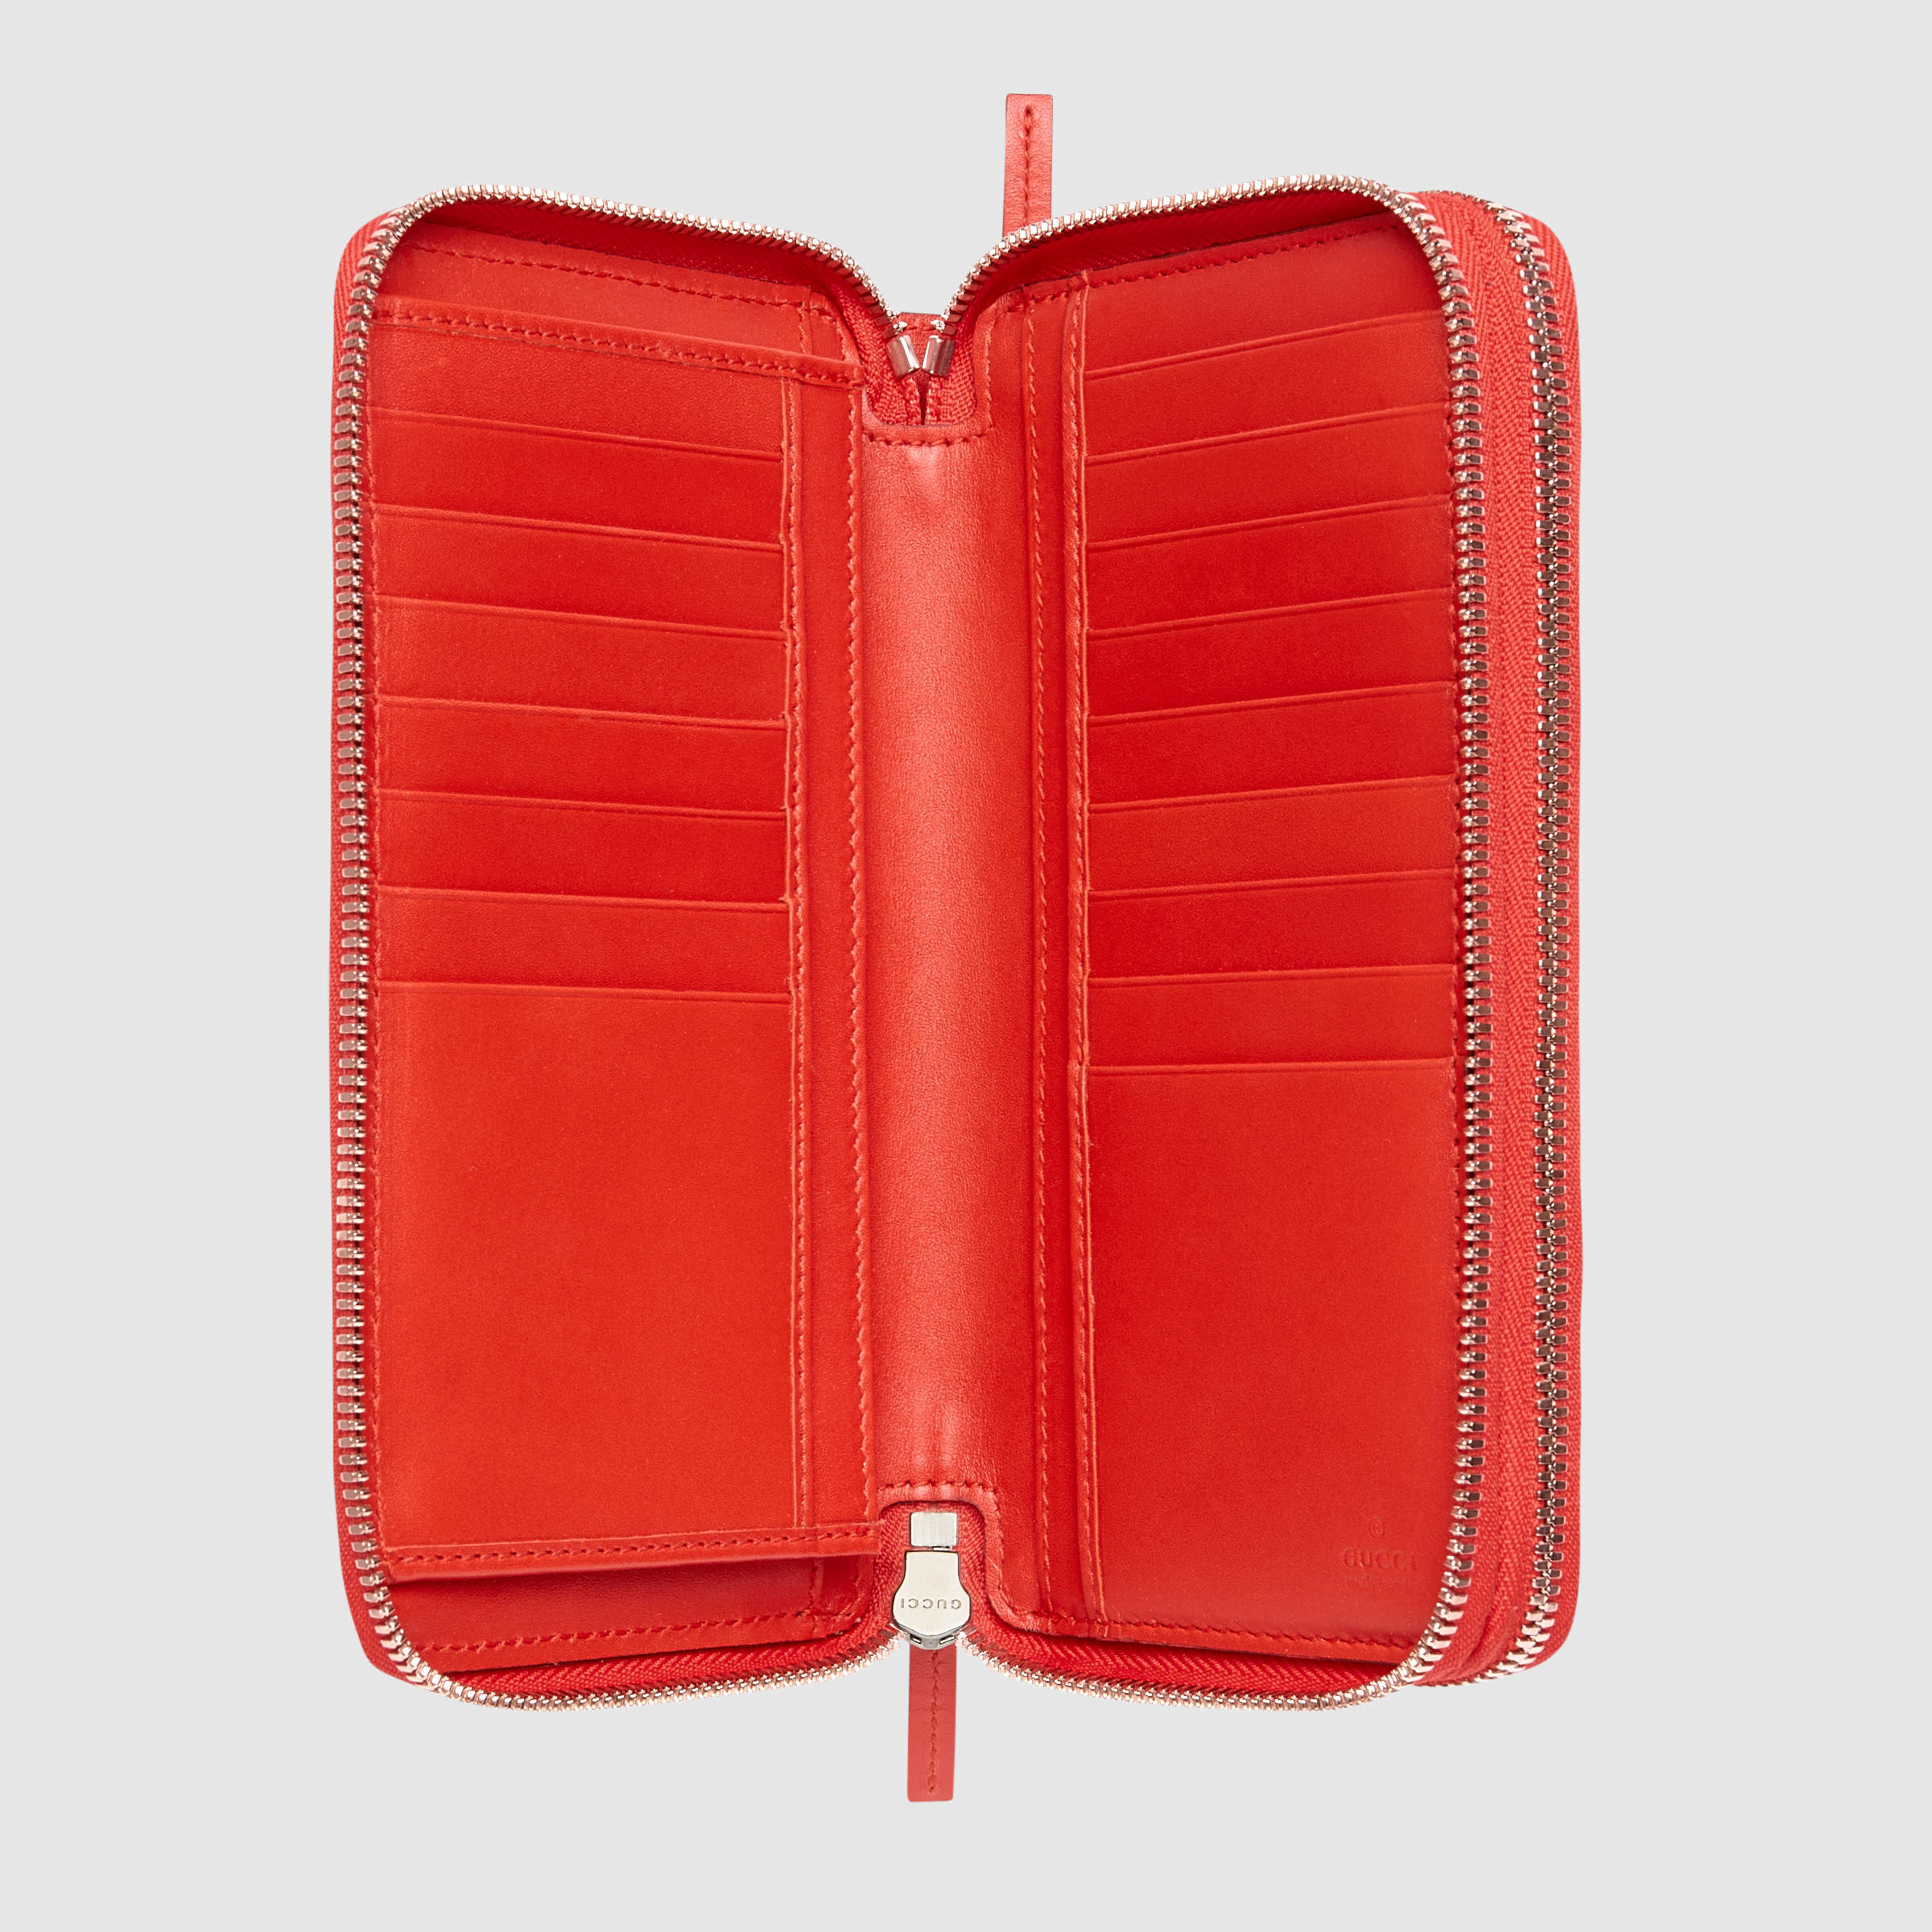 8ed86017e36a Gucci Signature Zip Around Wallet in Red - Lyst